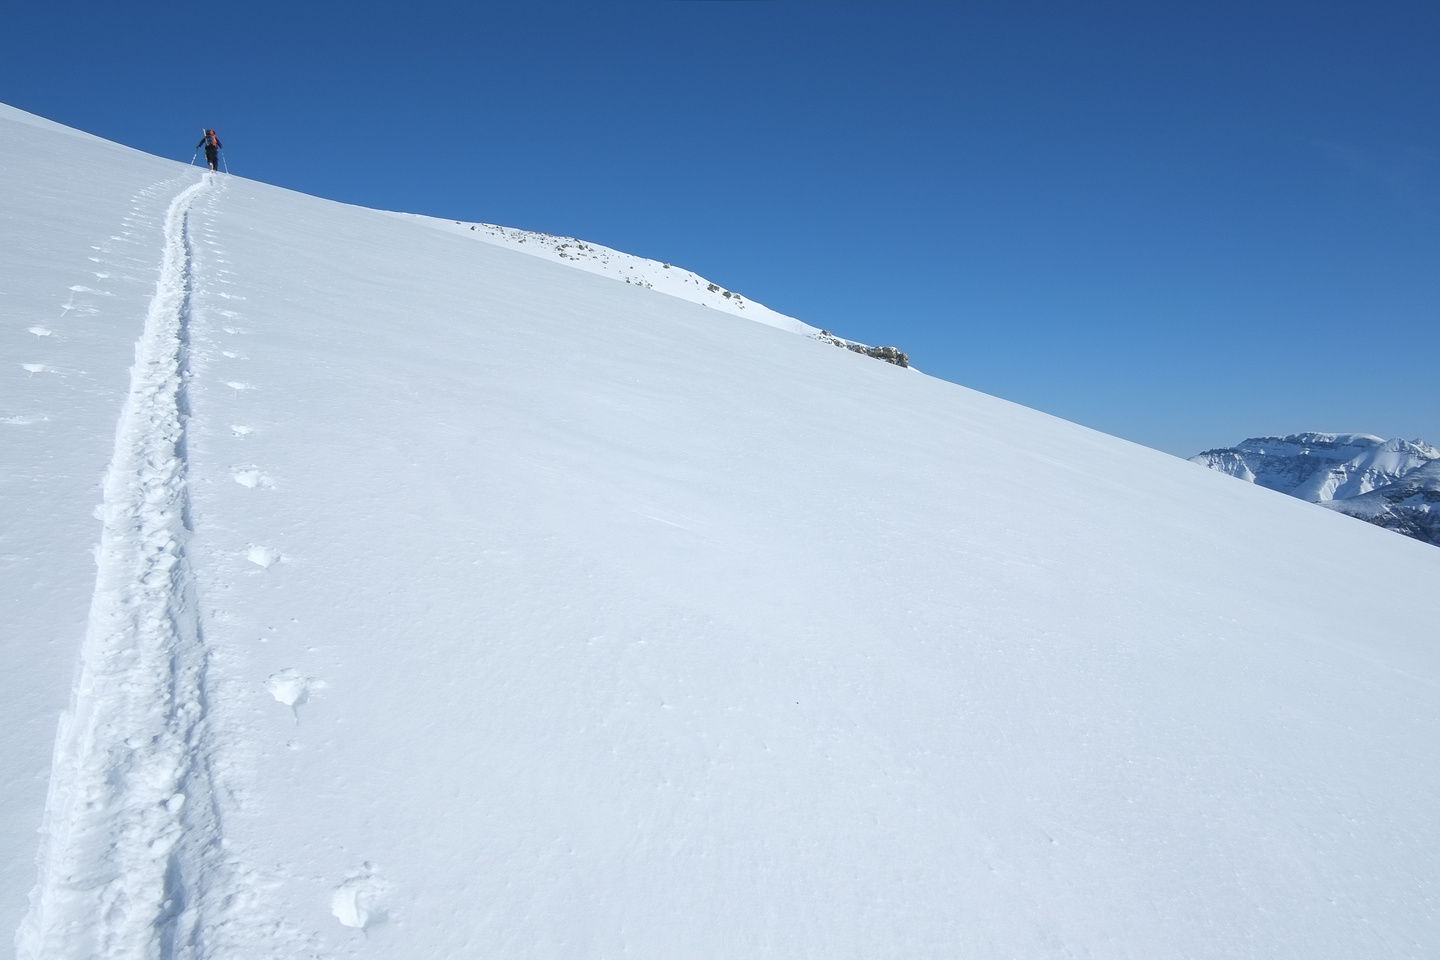 Starting to ascend to the summit ridge now.